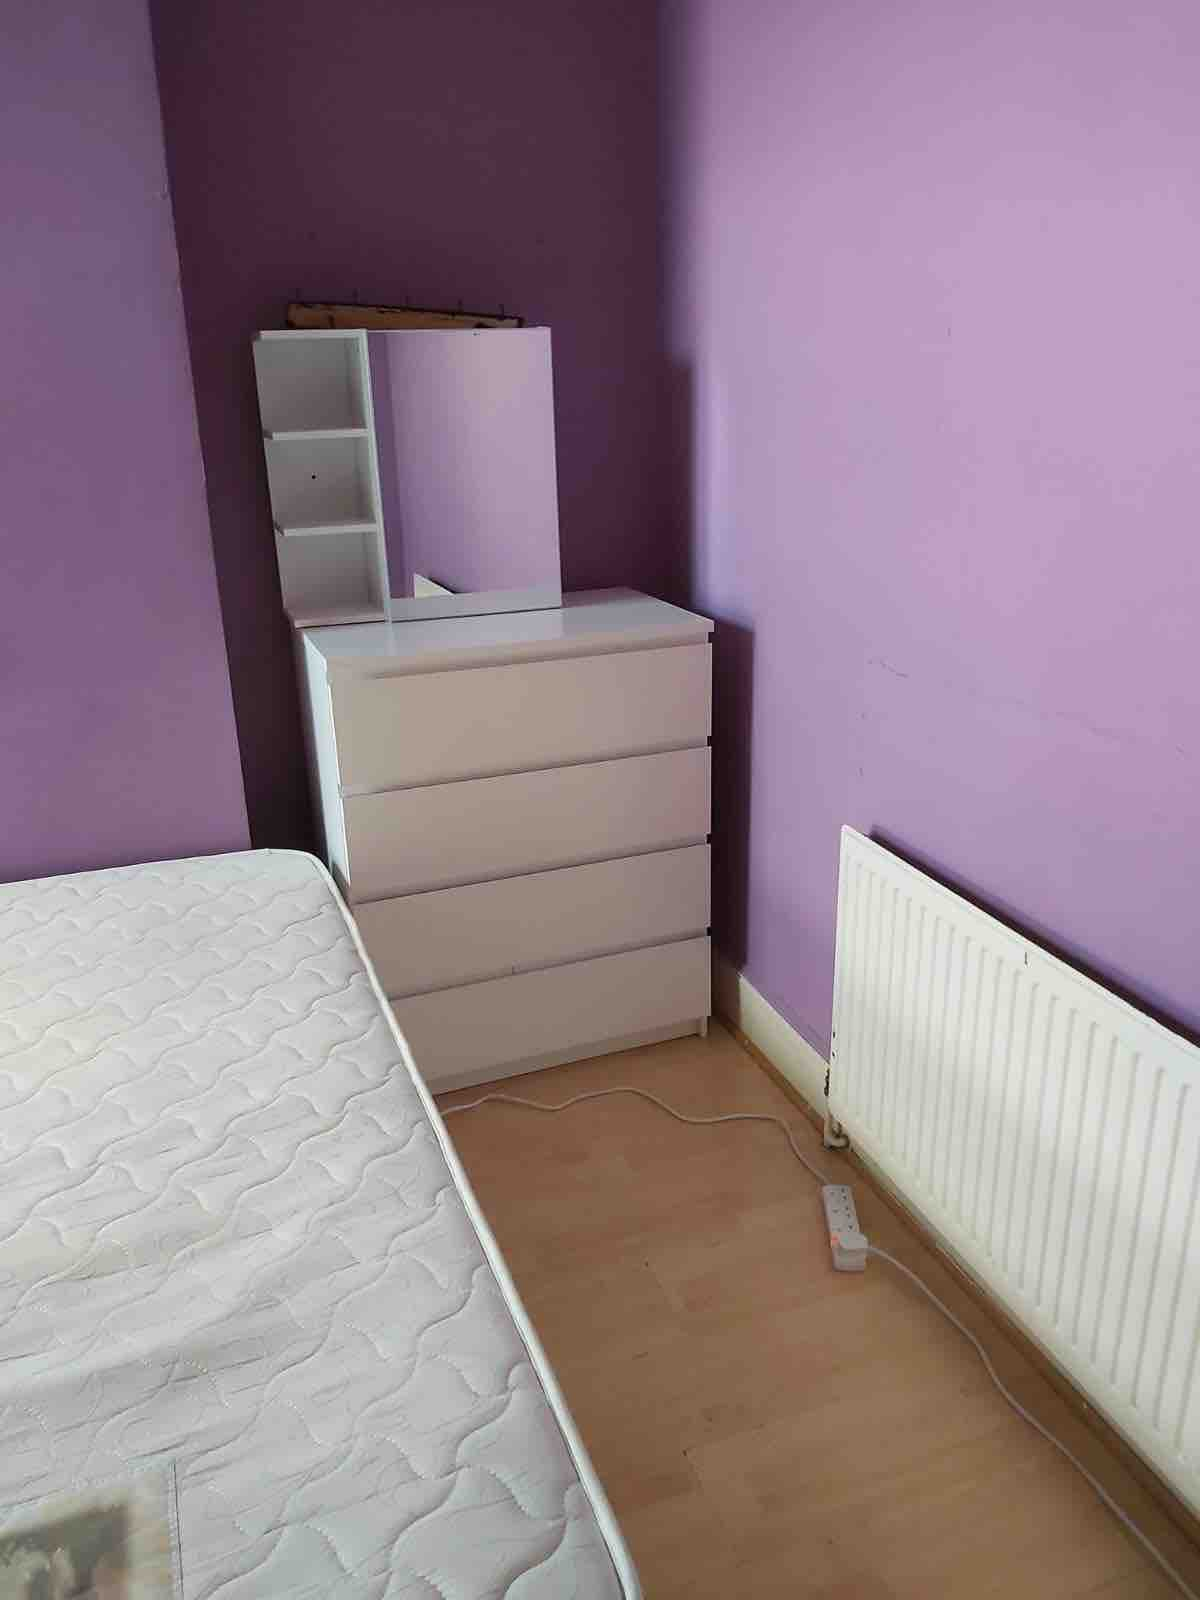 1 room in Lea Bridge, Leyton, E107DZ RoomsLocal image